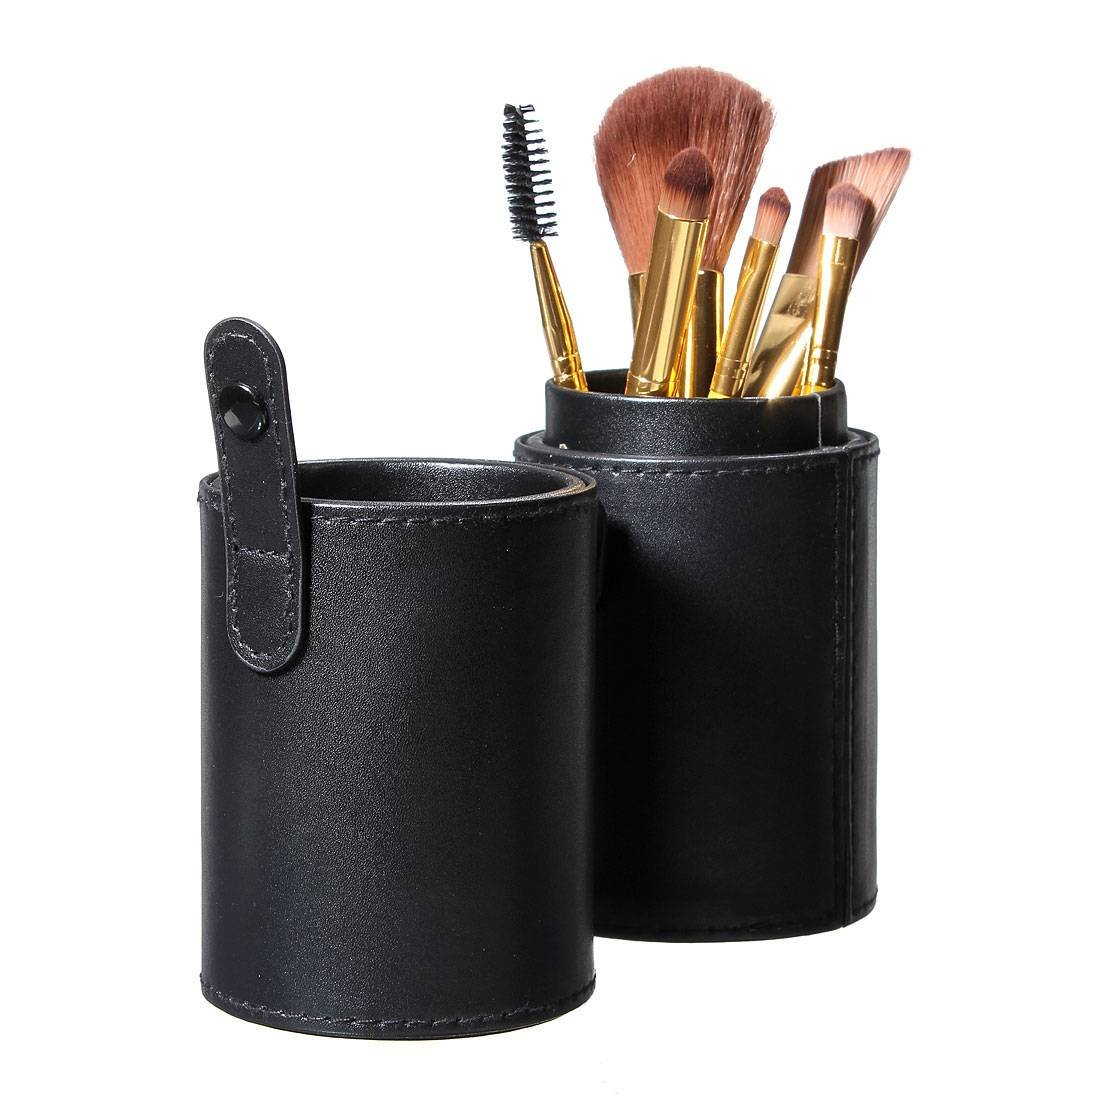 boite trousse tube etui case pour pinceau a maquillage. Black Bedroom Furniture Sets. Home Design Ideas